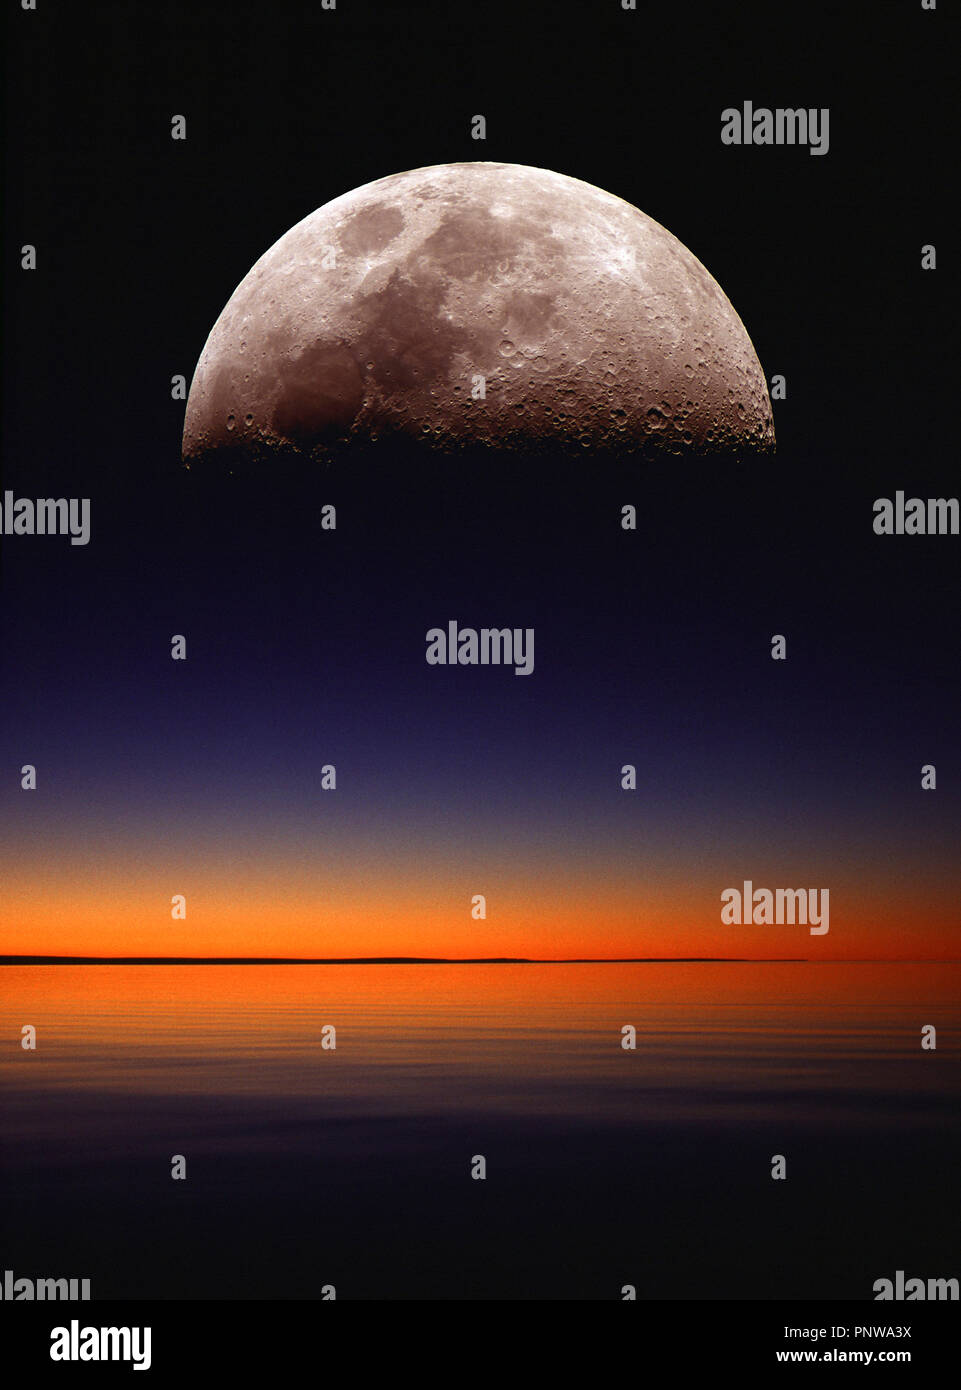 Concept art photograph of the moon rising above a seascape horizon at dawn. - Stock Image